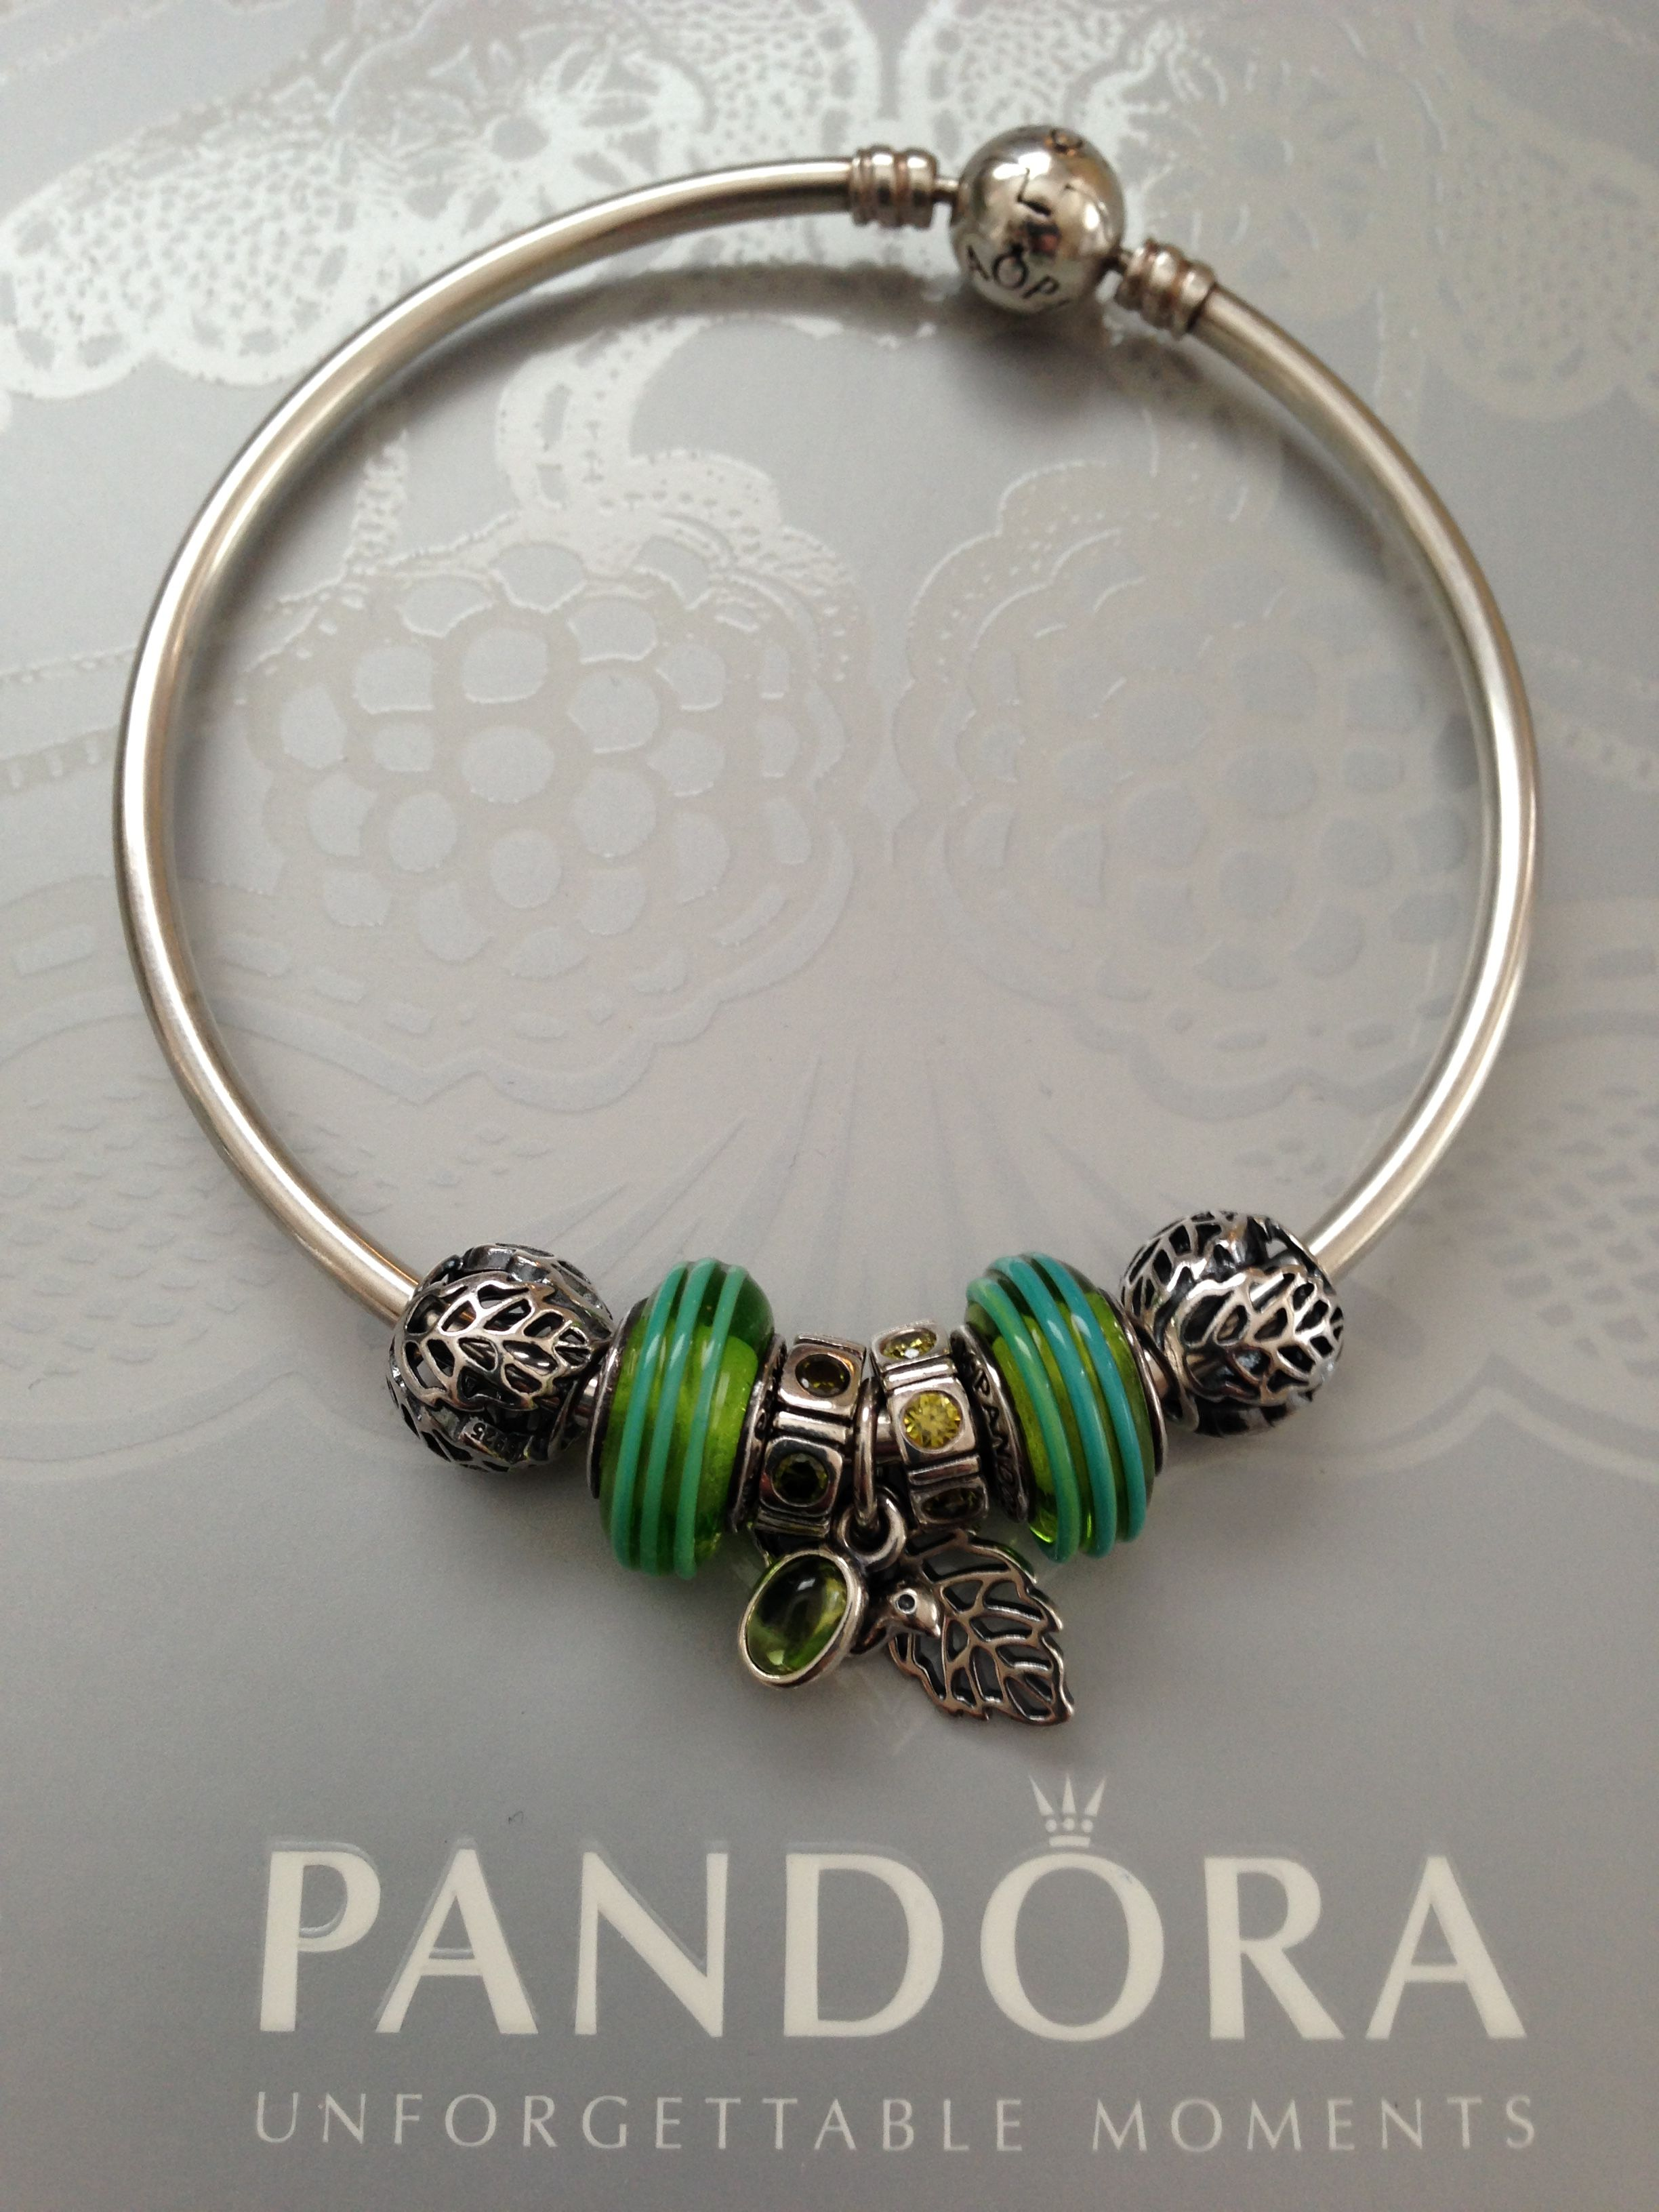 pandora charm charms there in bangles bangle a for some us product original culture silver moments special are amazing our bracelet to no many life occasion or matter wear